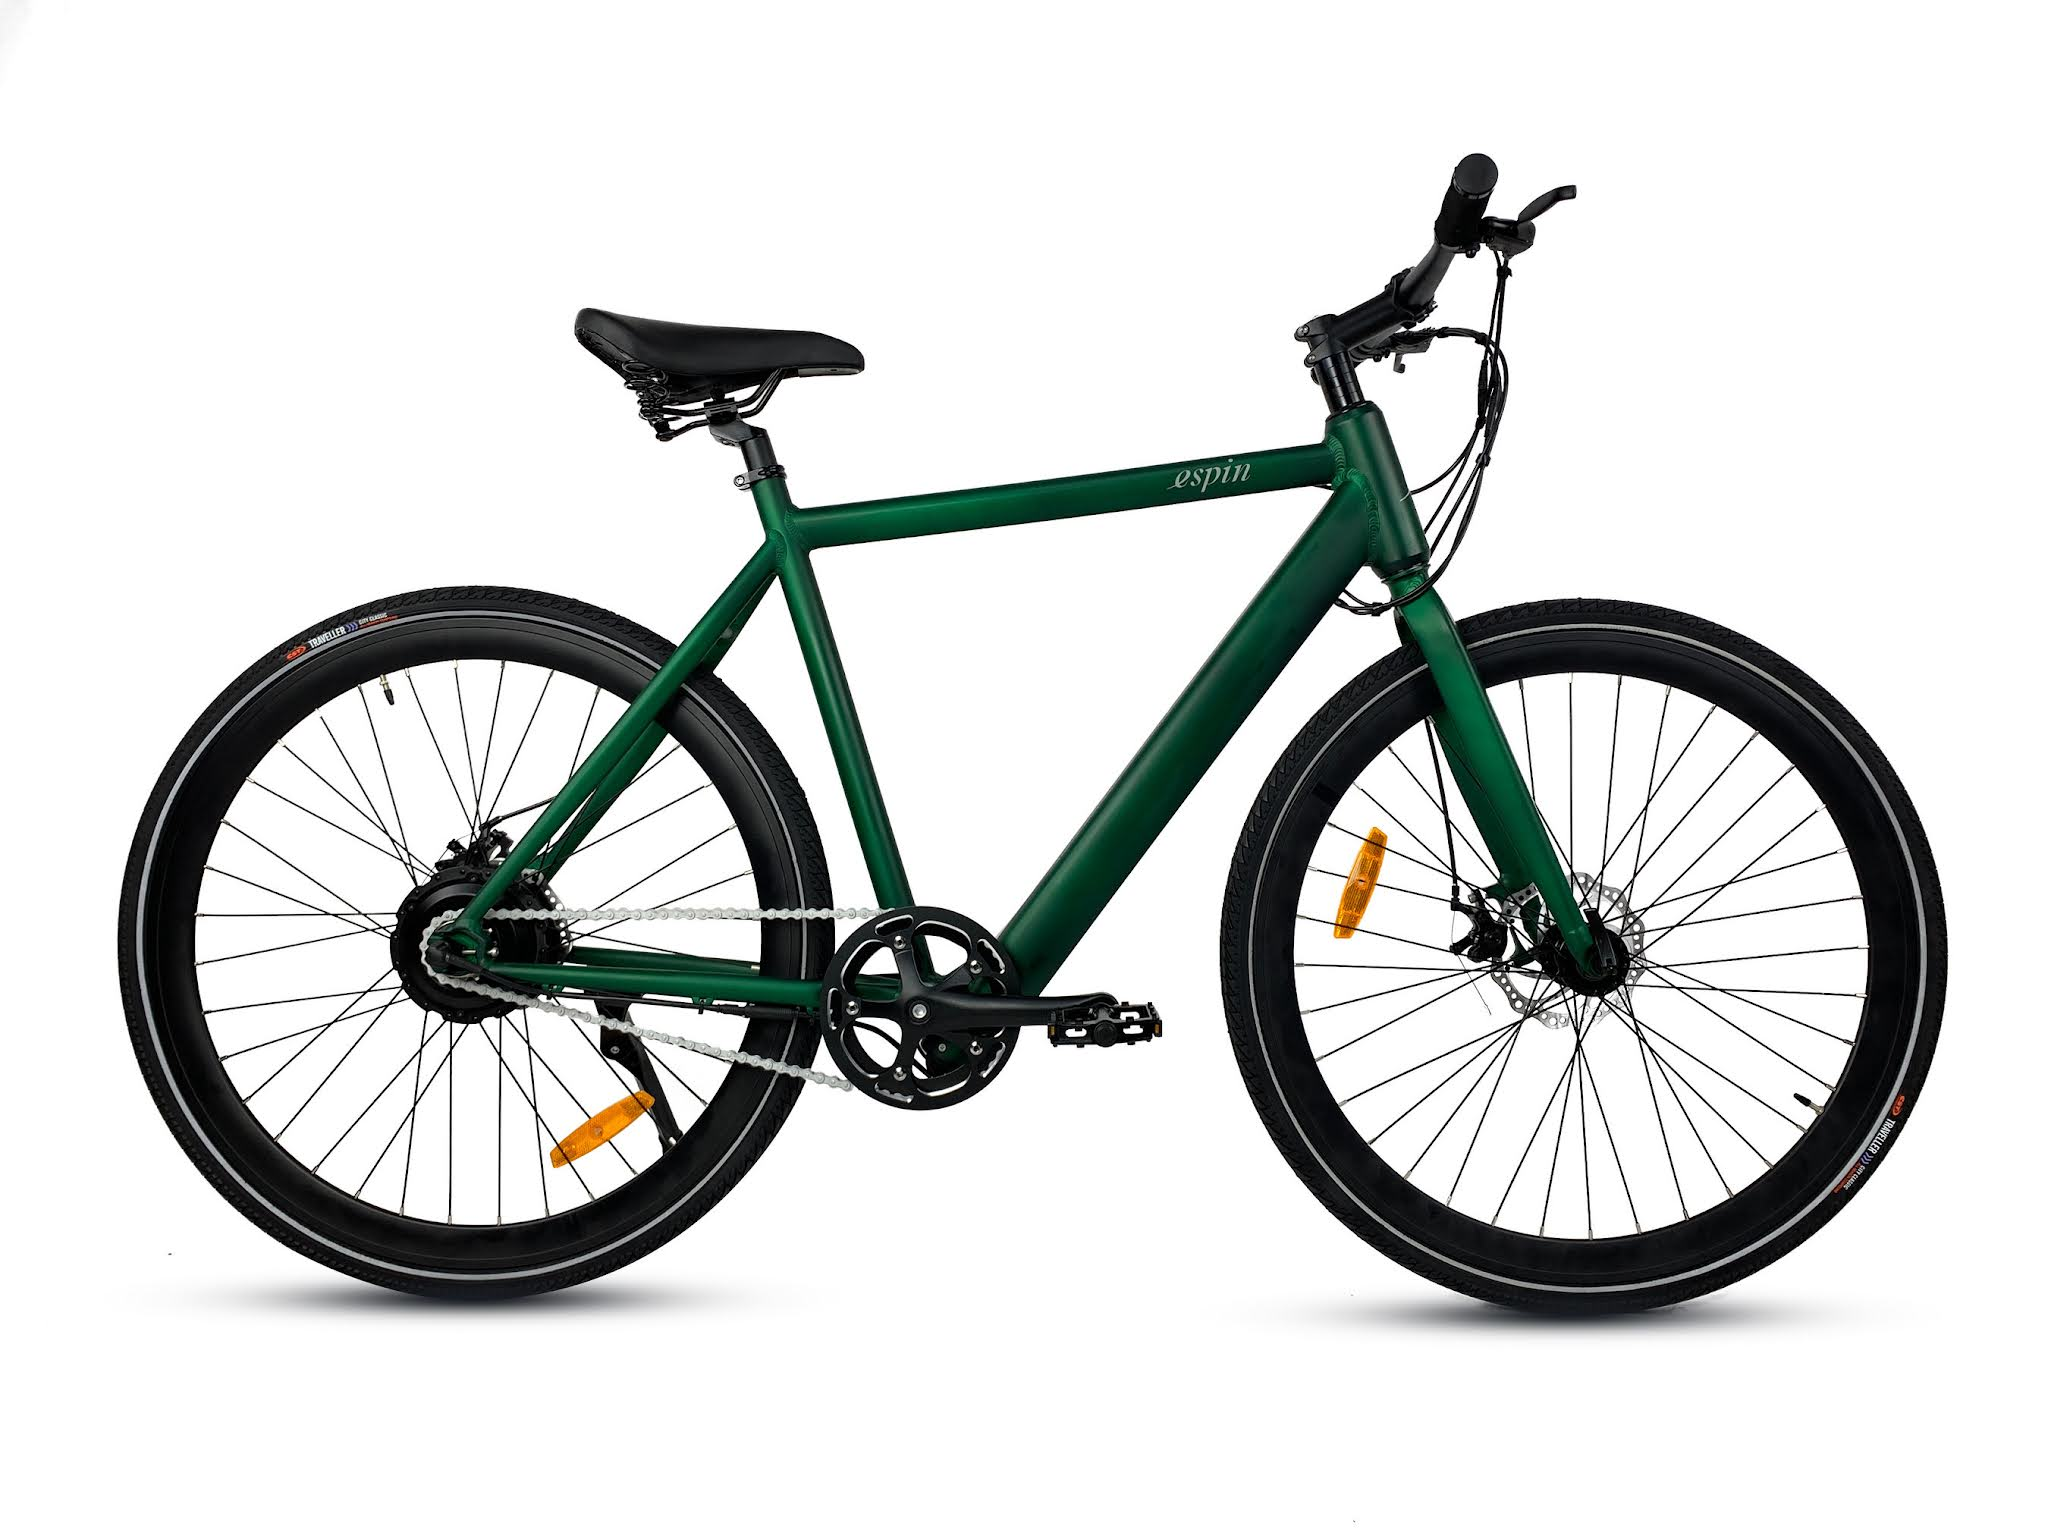 Designed for the Modern Cyclist, Espin Announces a Limited Release of Aero, Fixed Gear Styled e-Bike for City Commuting